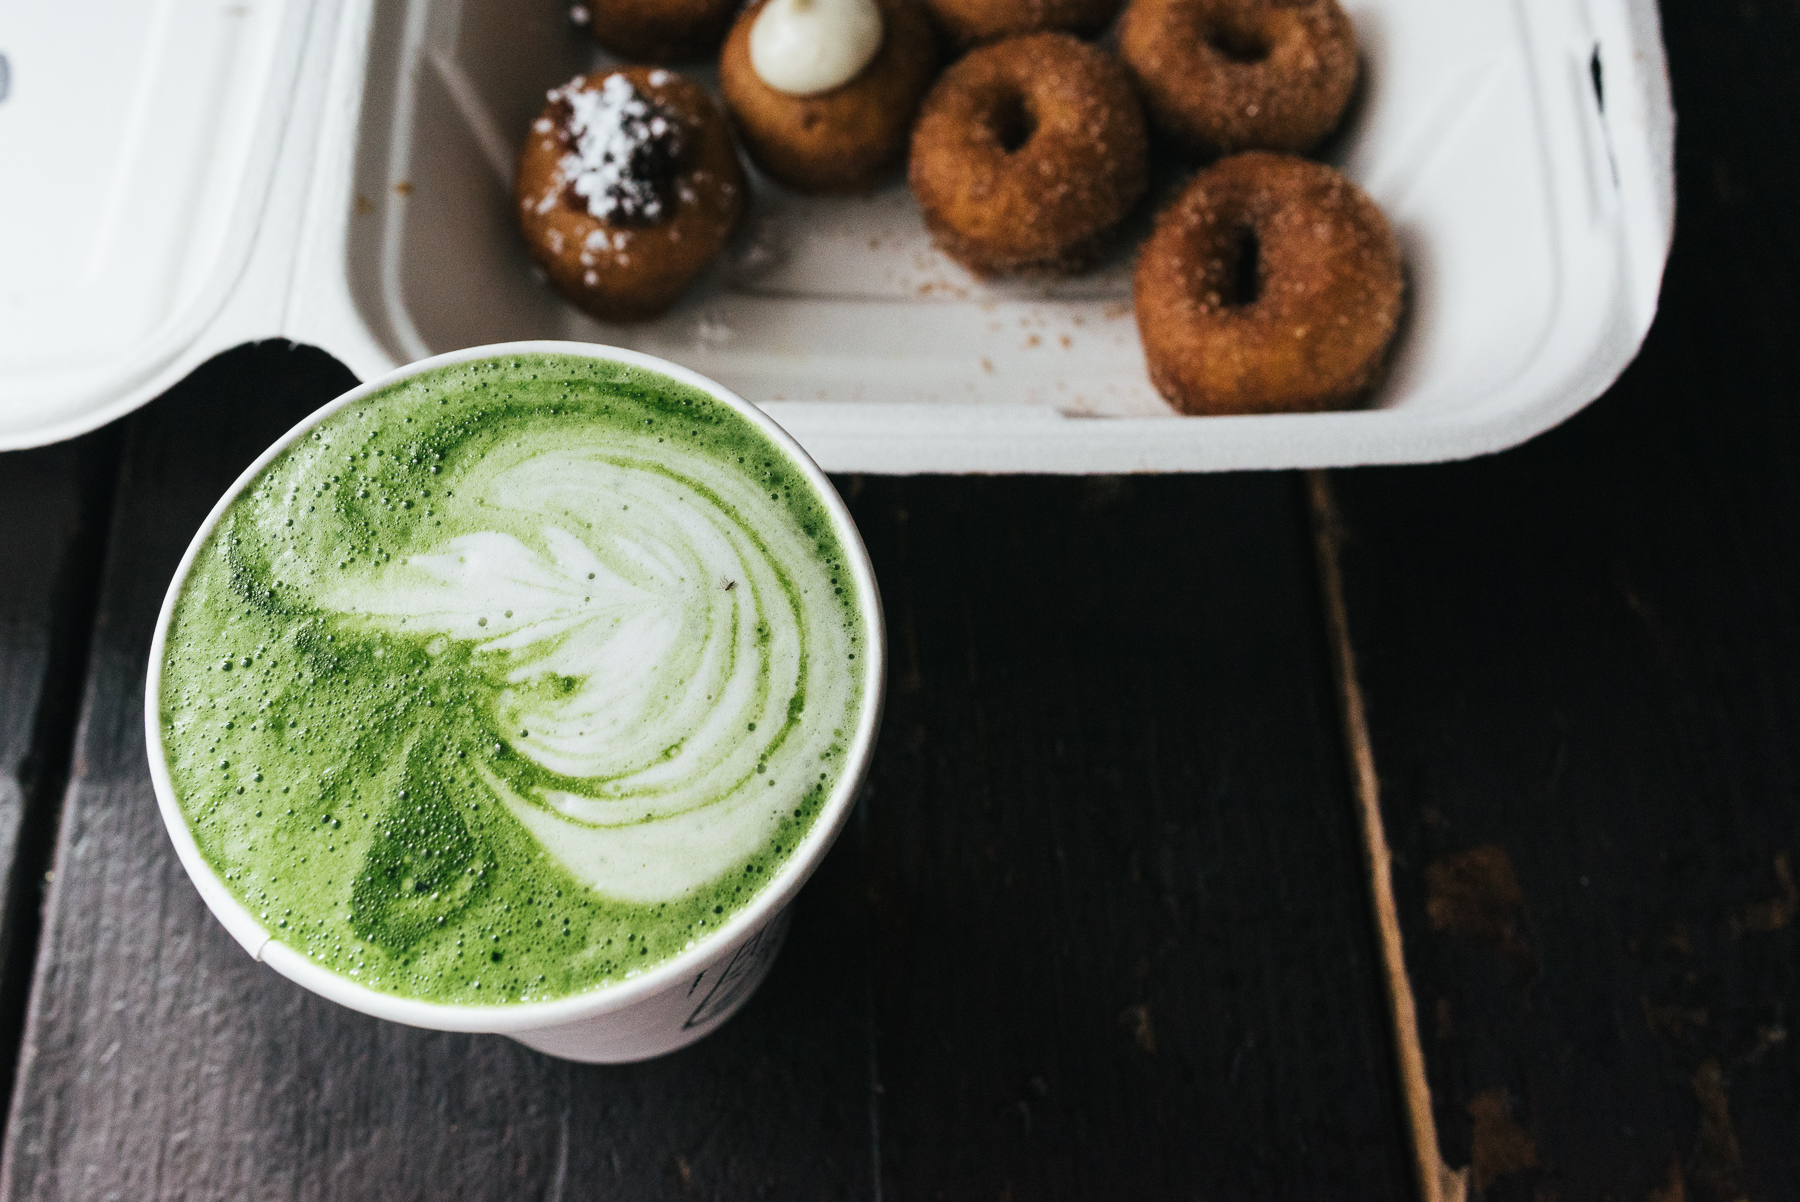 matcha green tea latte with doughnuts in background